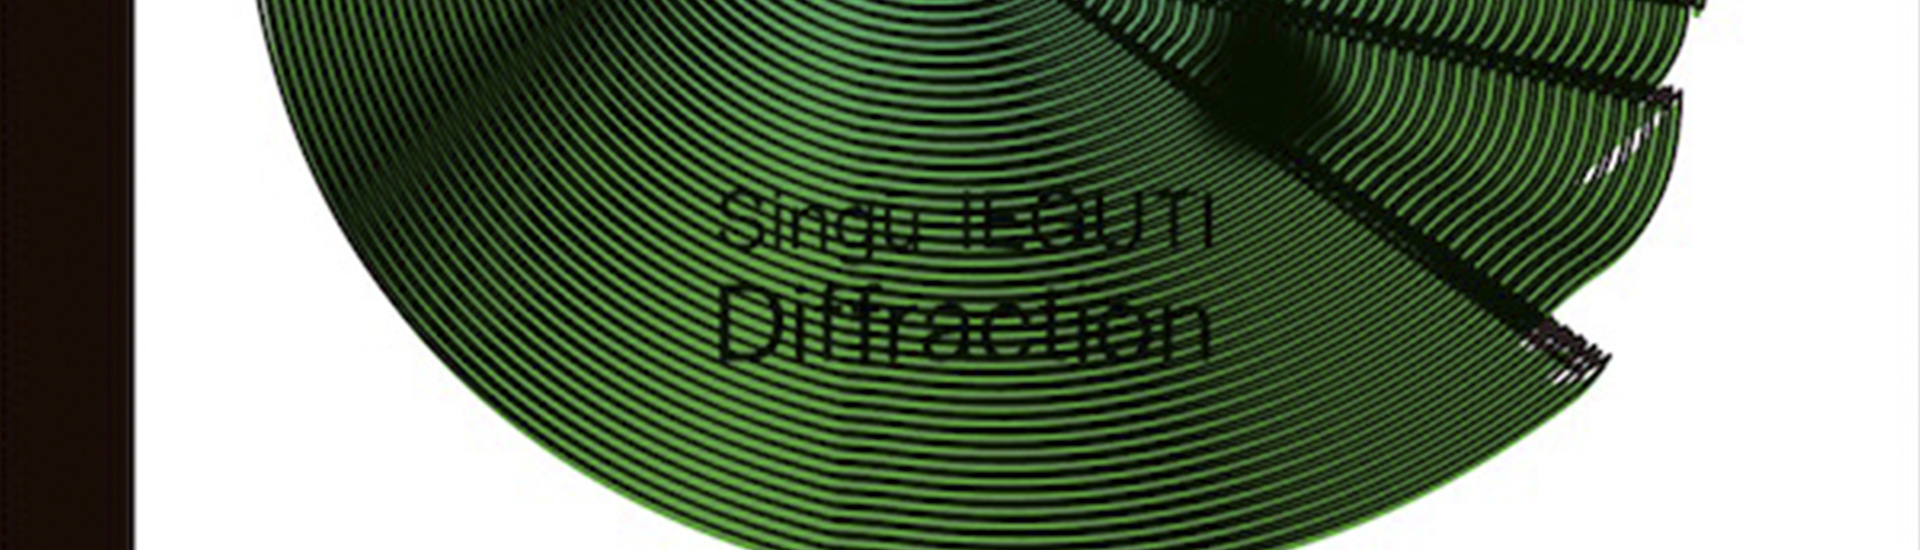 Singū-IEGUTI – Diffraction